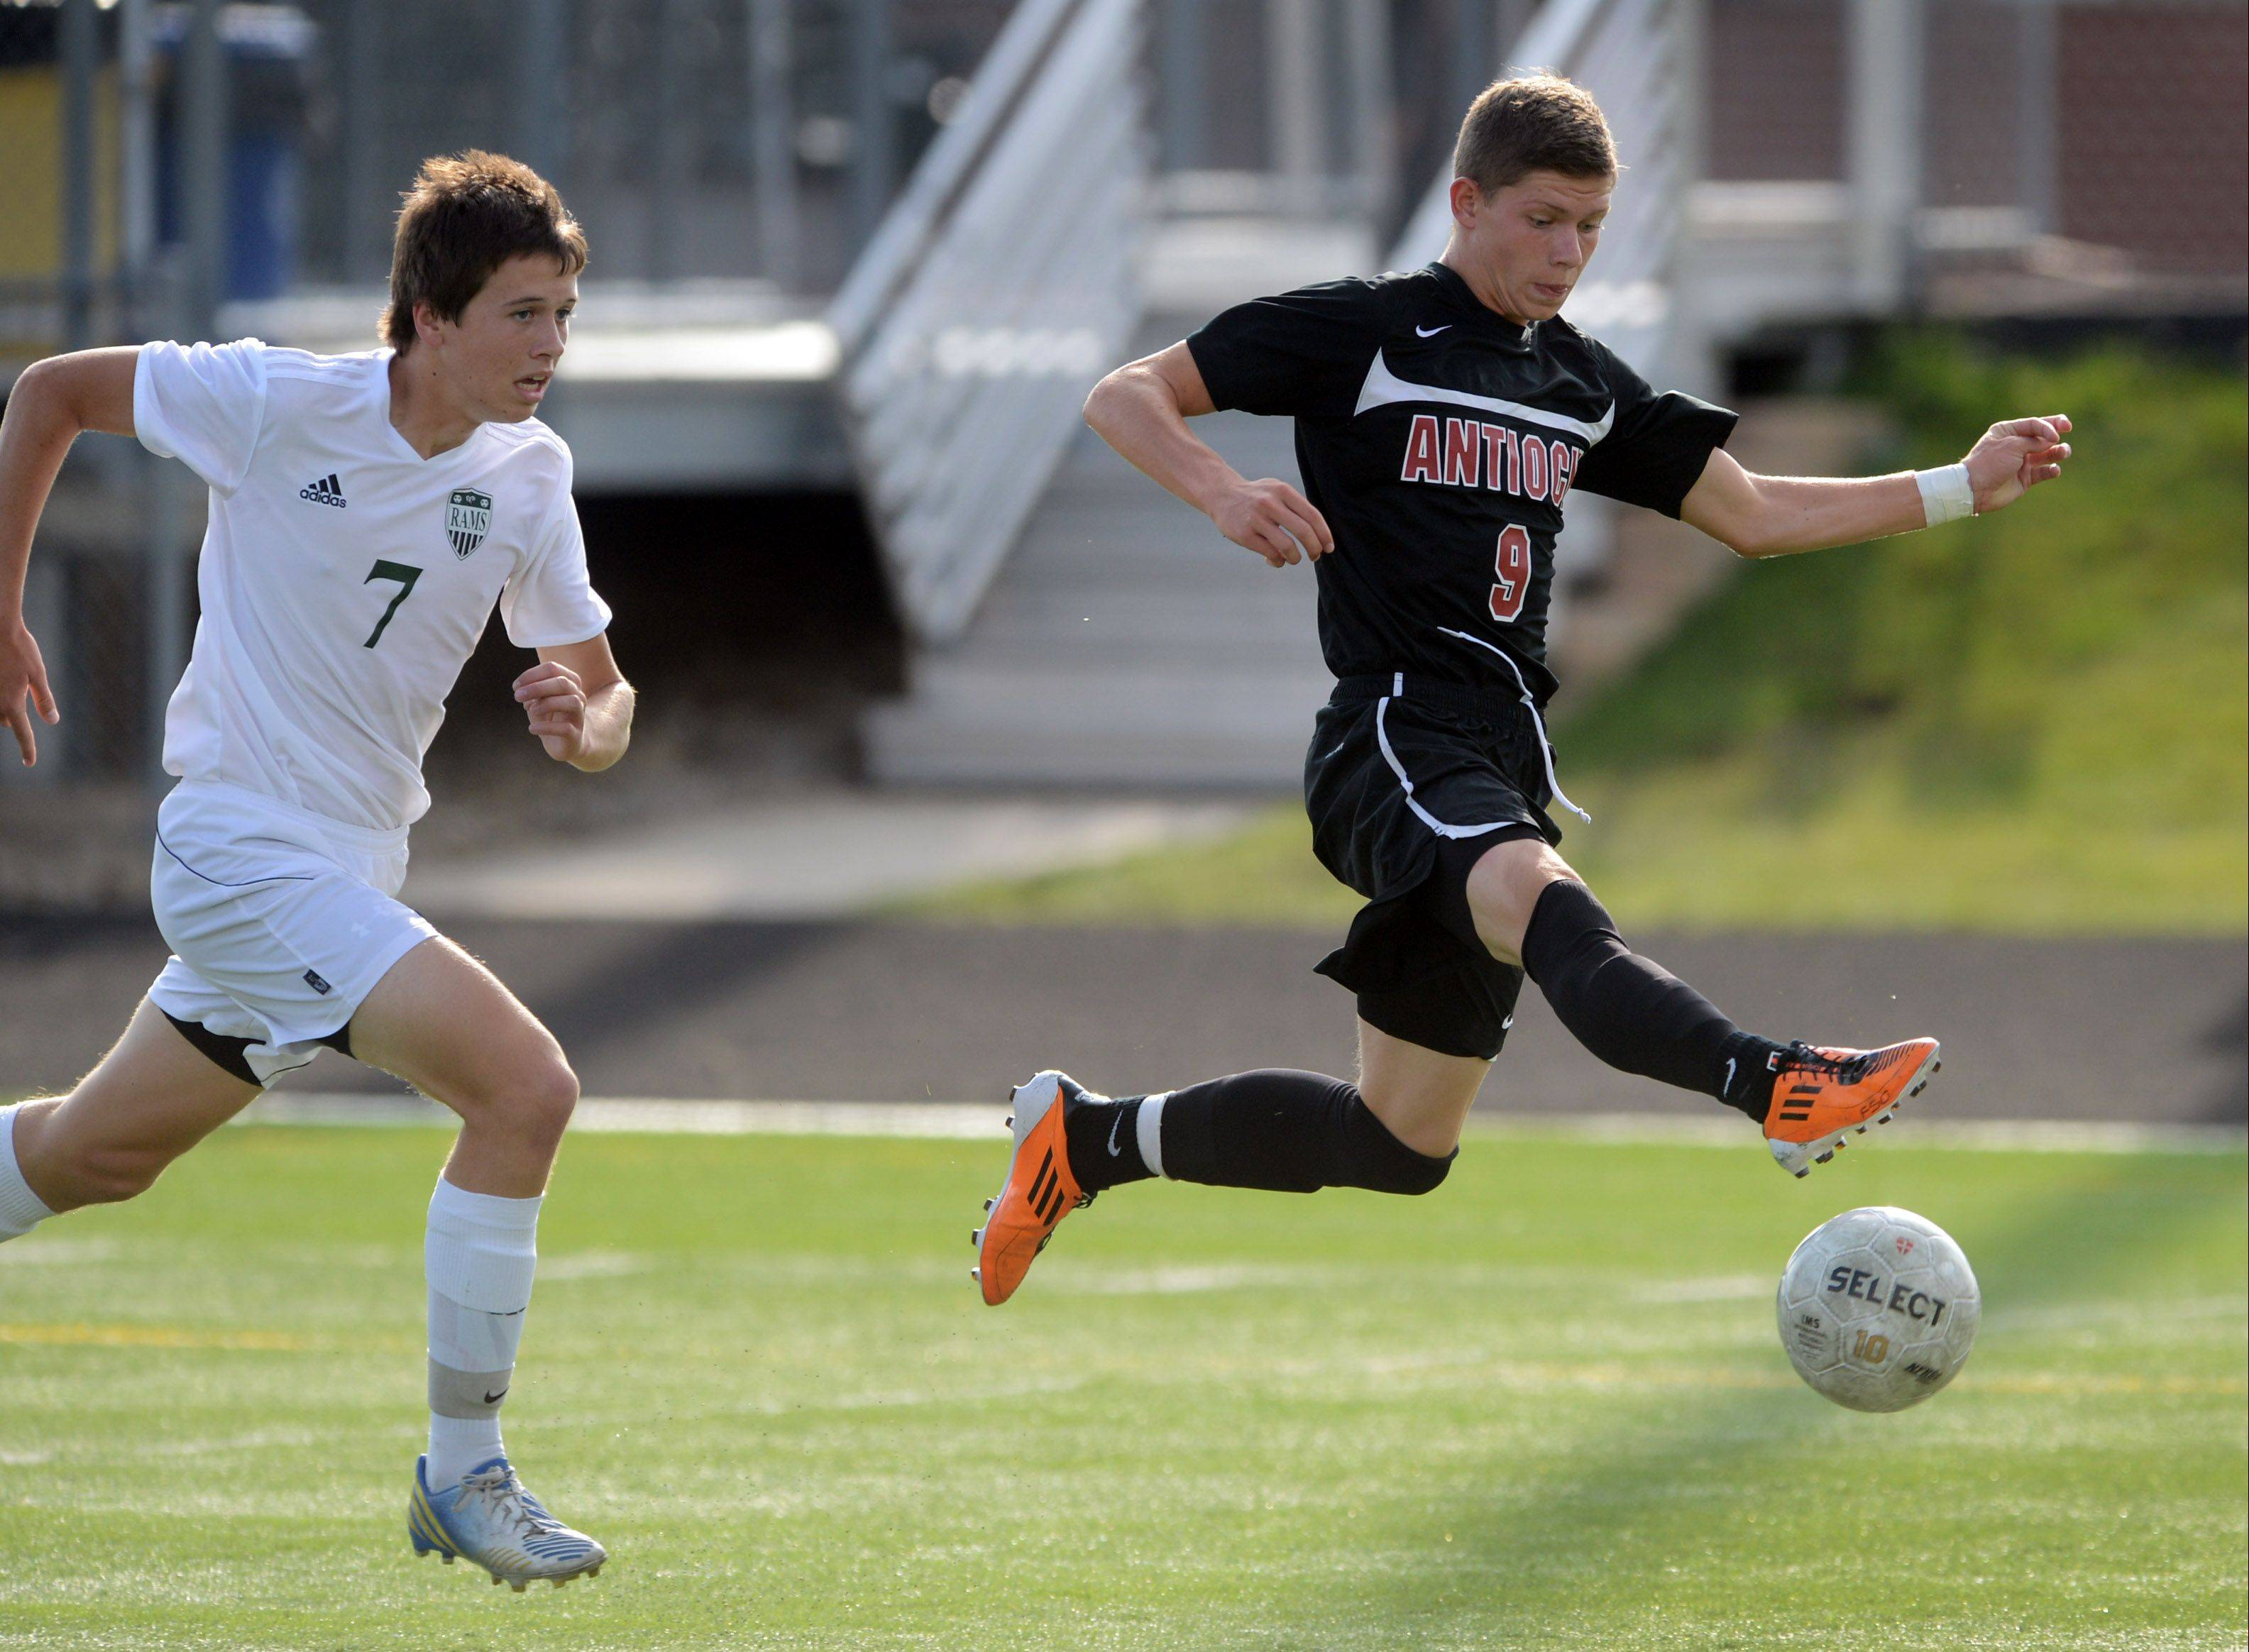 Antioch's Krystian Streit controls the ball as Grayslake Central's John Moroney gives chase during Wednesday's match in Grayslake.